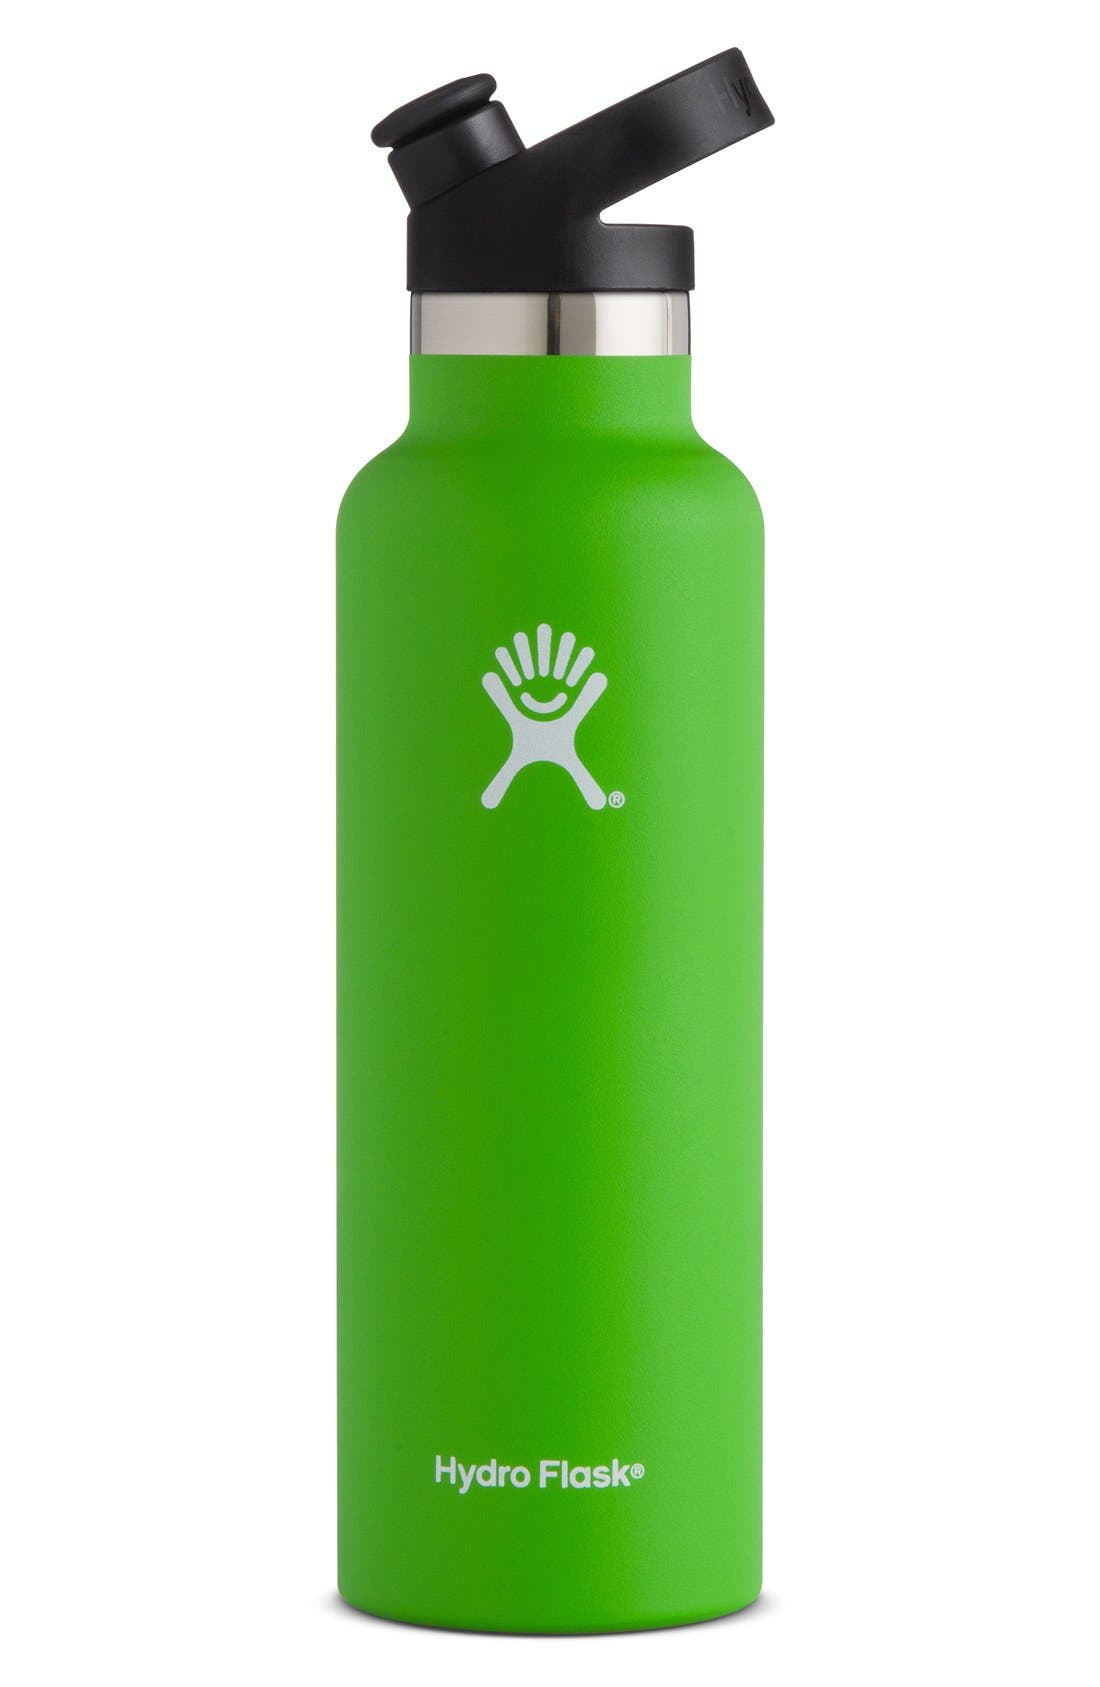 Main Image - Hydro Flask 21-Ounce Standard Mouth Bottle with Sport Cap